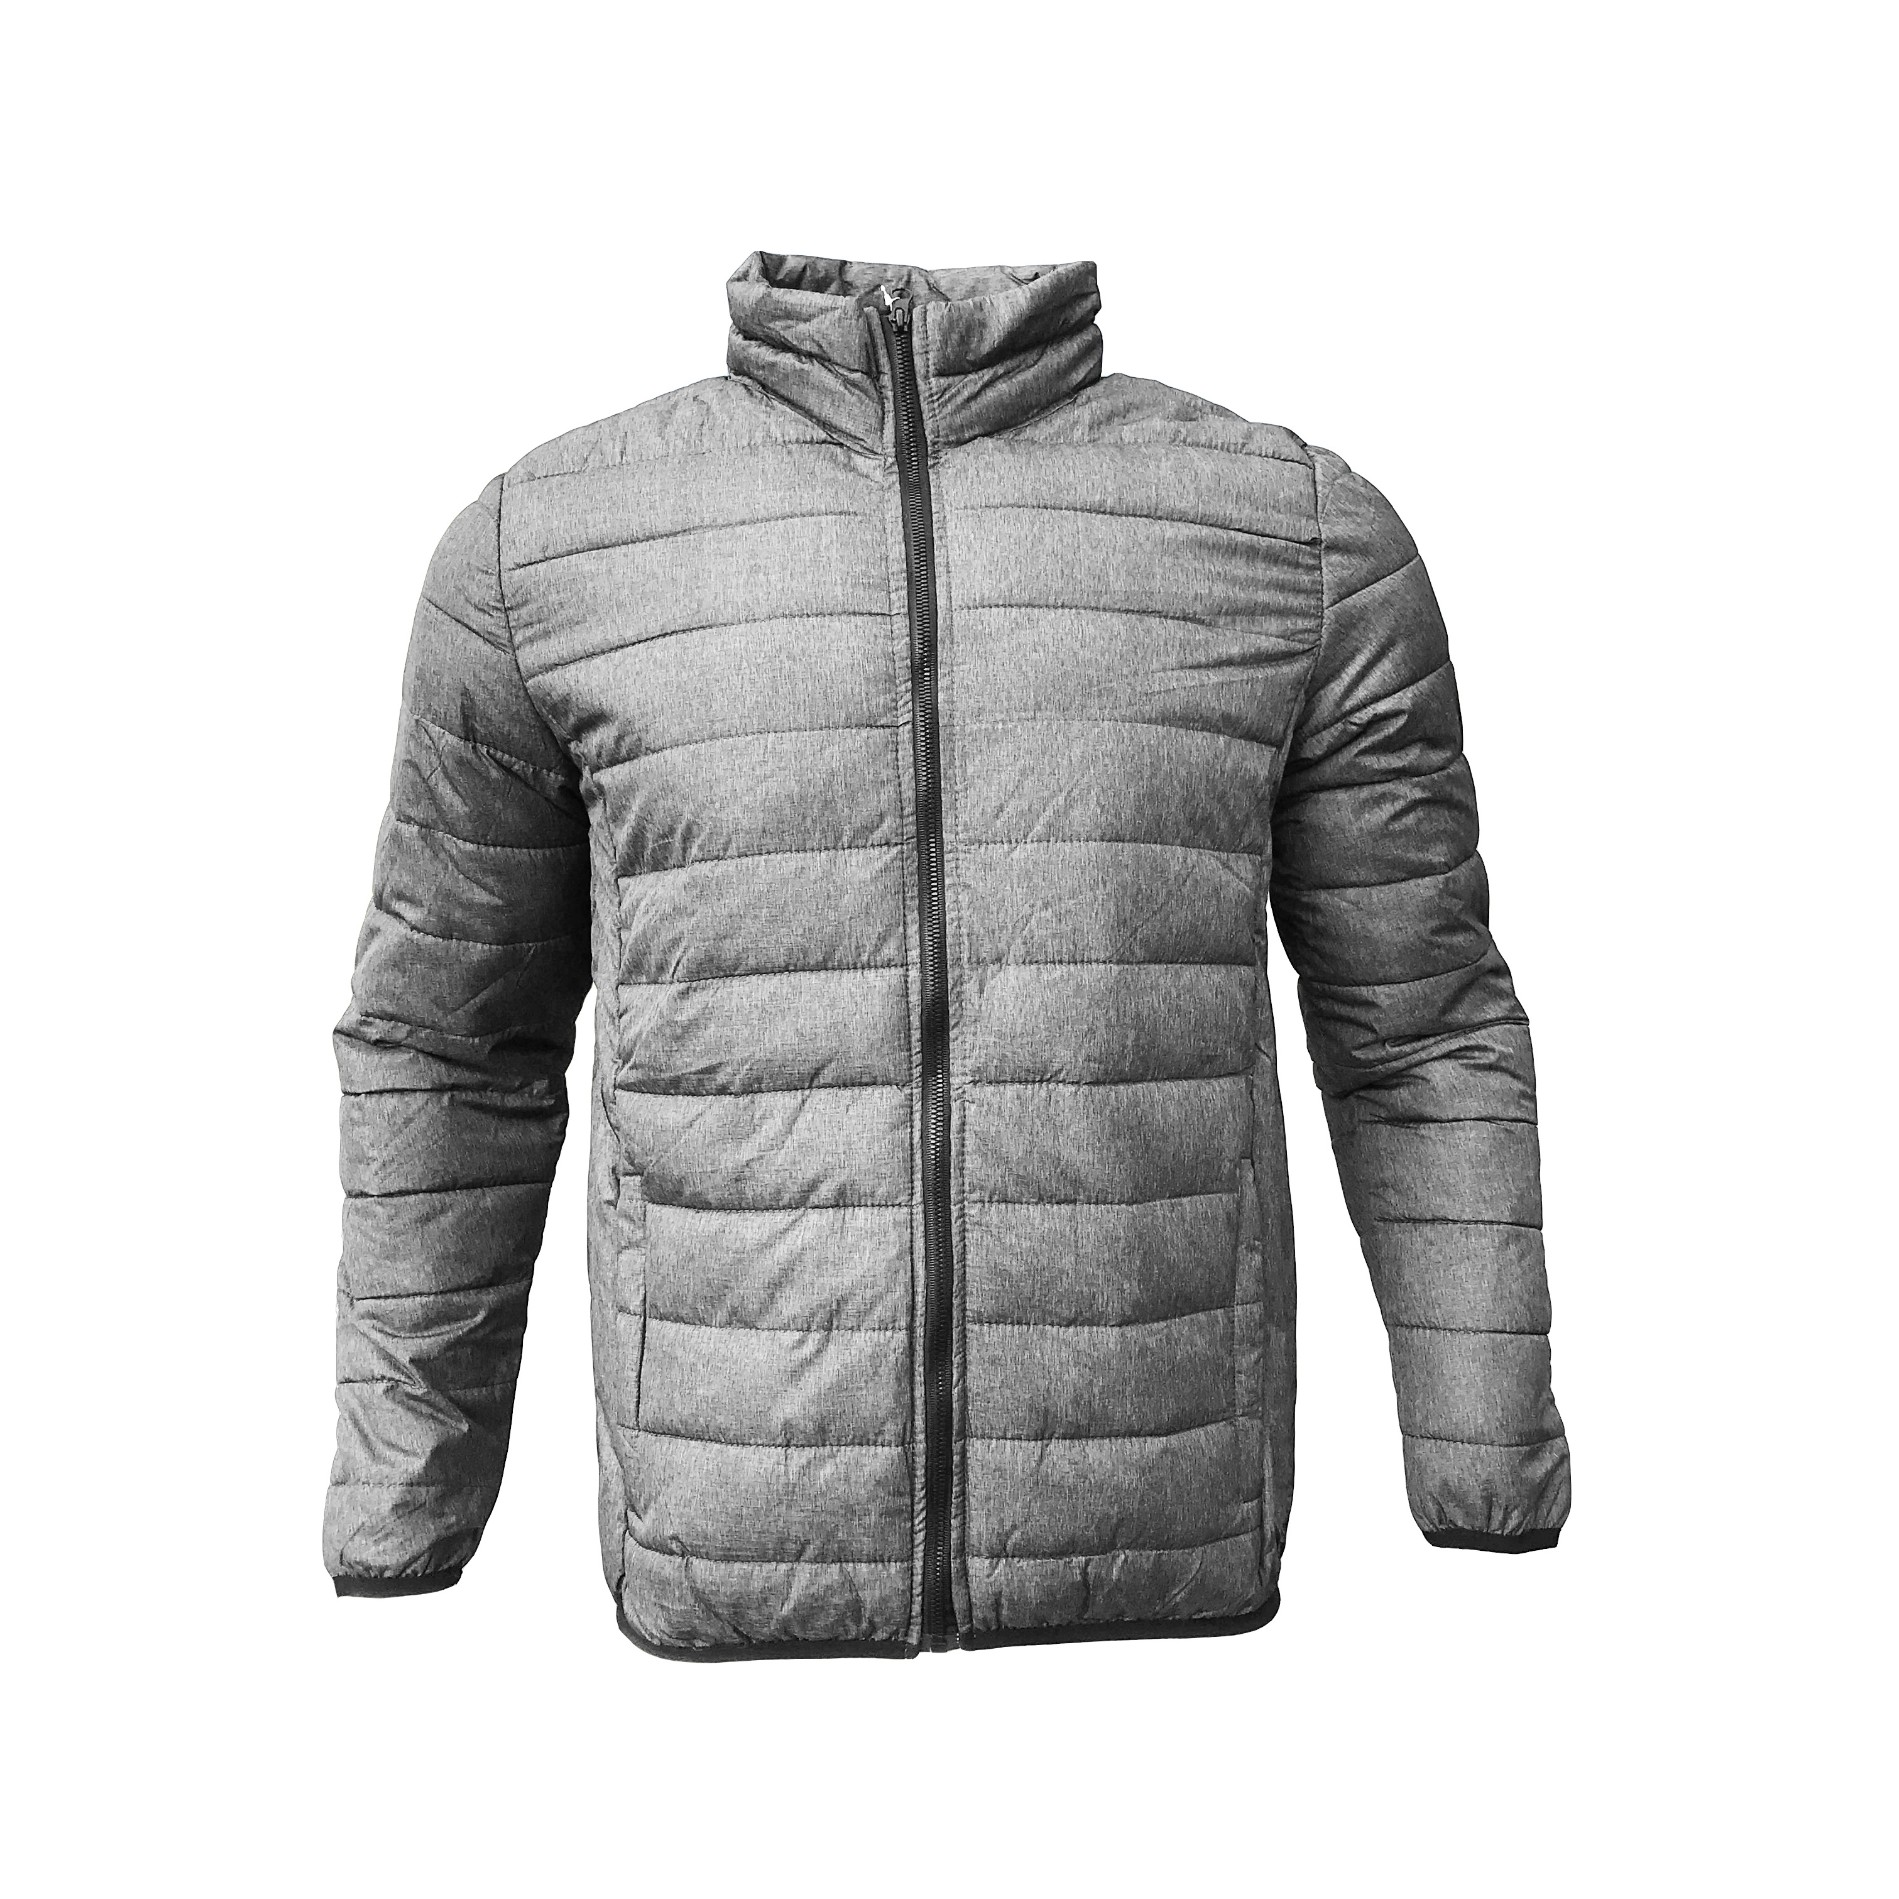 Winter Quilted Fashion Winter Jacket For Men Manufacturers, Winter Quilted Fashion Winter Jacket For Men Factory, Supply Winter Quilted Fashion Winter Jacket For Men